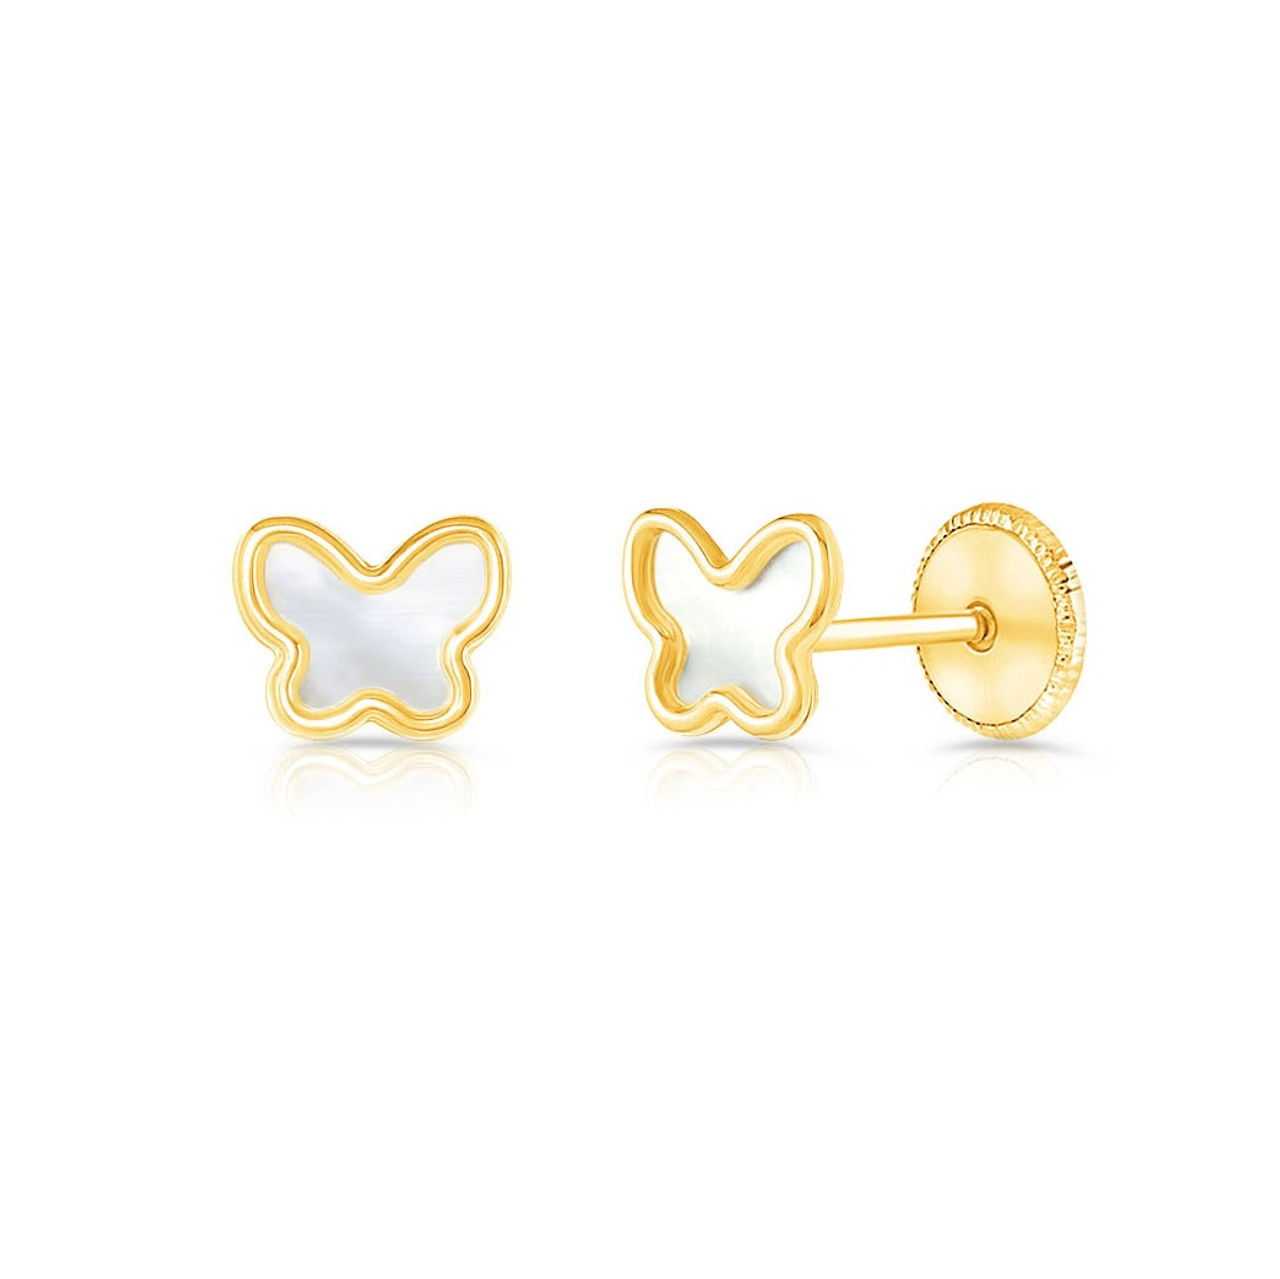 Mini Butterfly Baby Earrings With Safety Backs 14k Gold